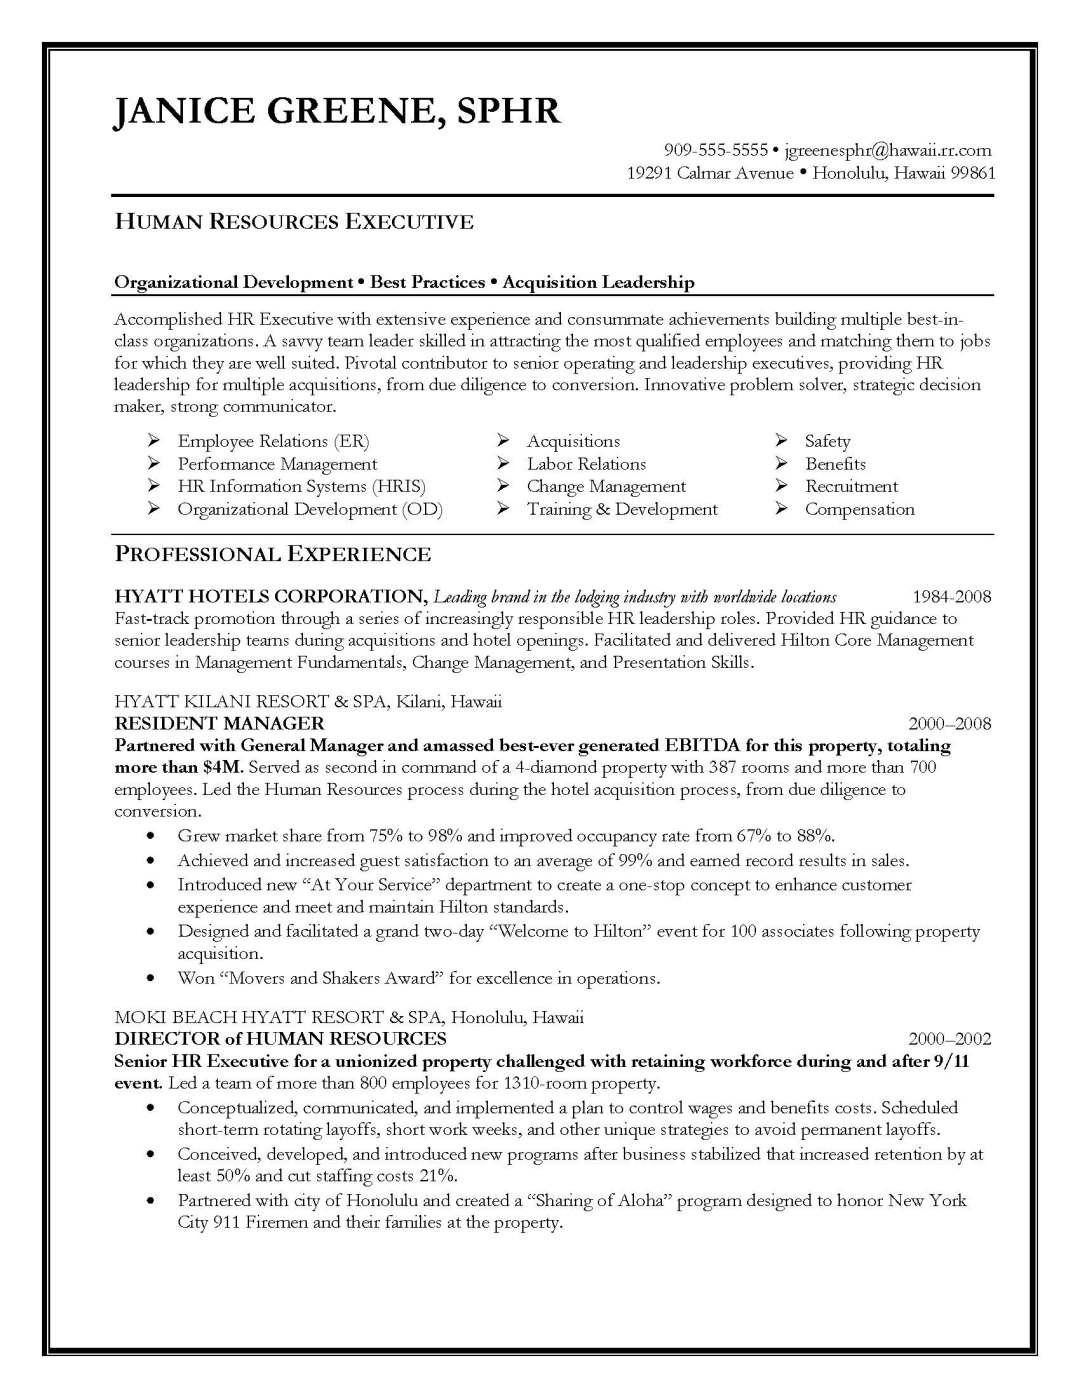 Business Partnership Letter Template - Self Employed Cover Letter 23 Hr Business Partner Cover Letter